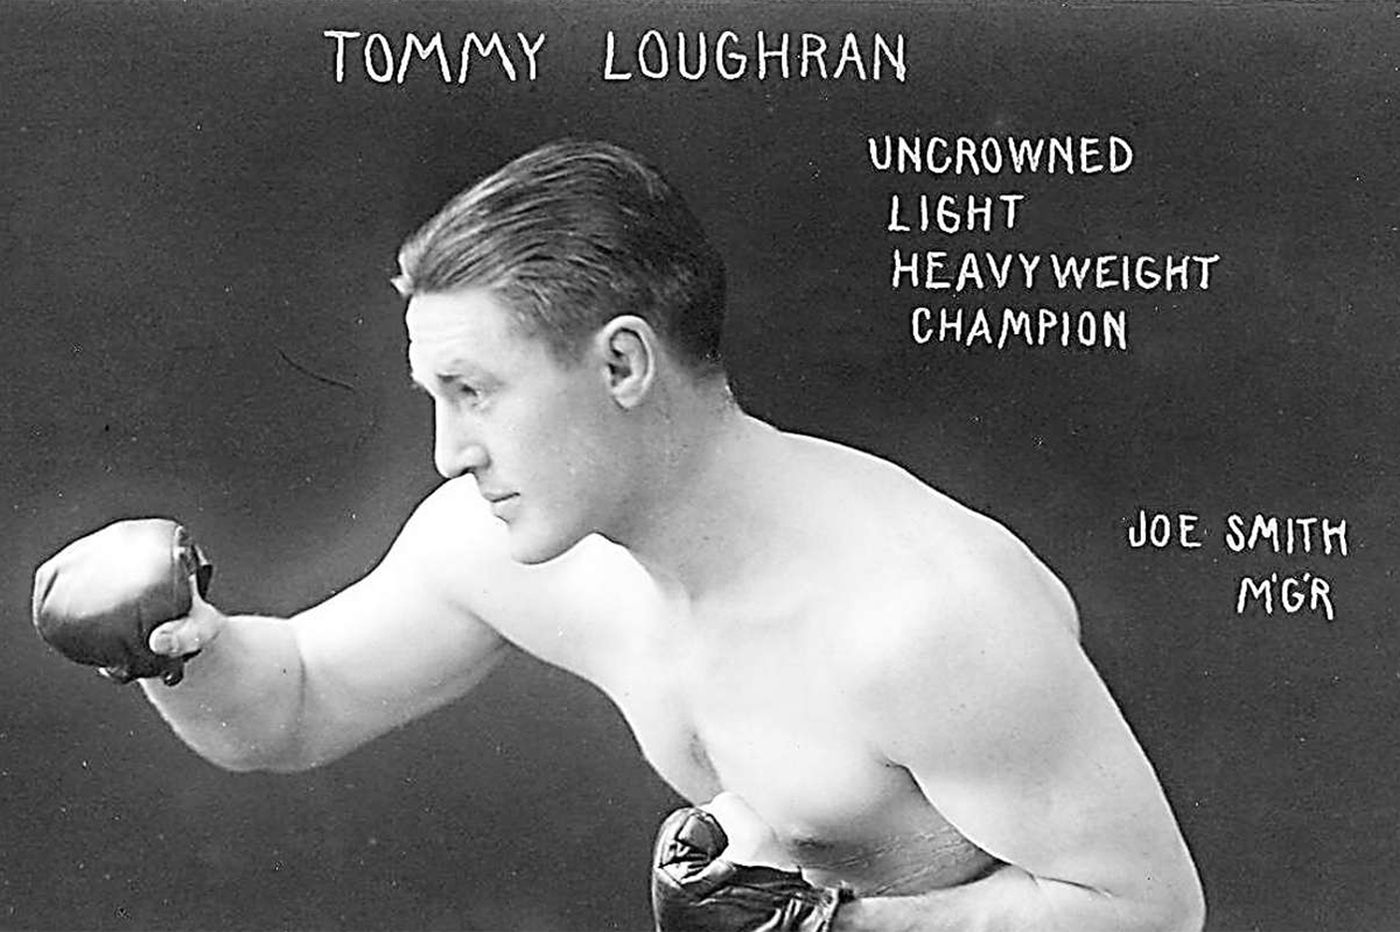 Philly plaque recalls boxer Tommy Loughran